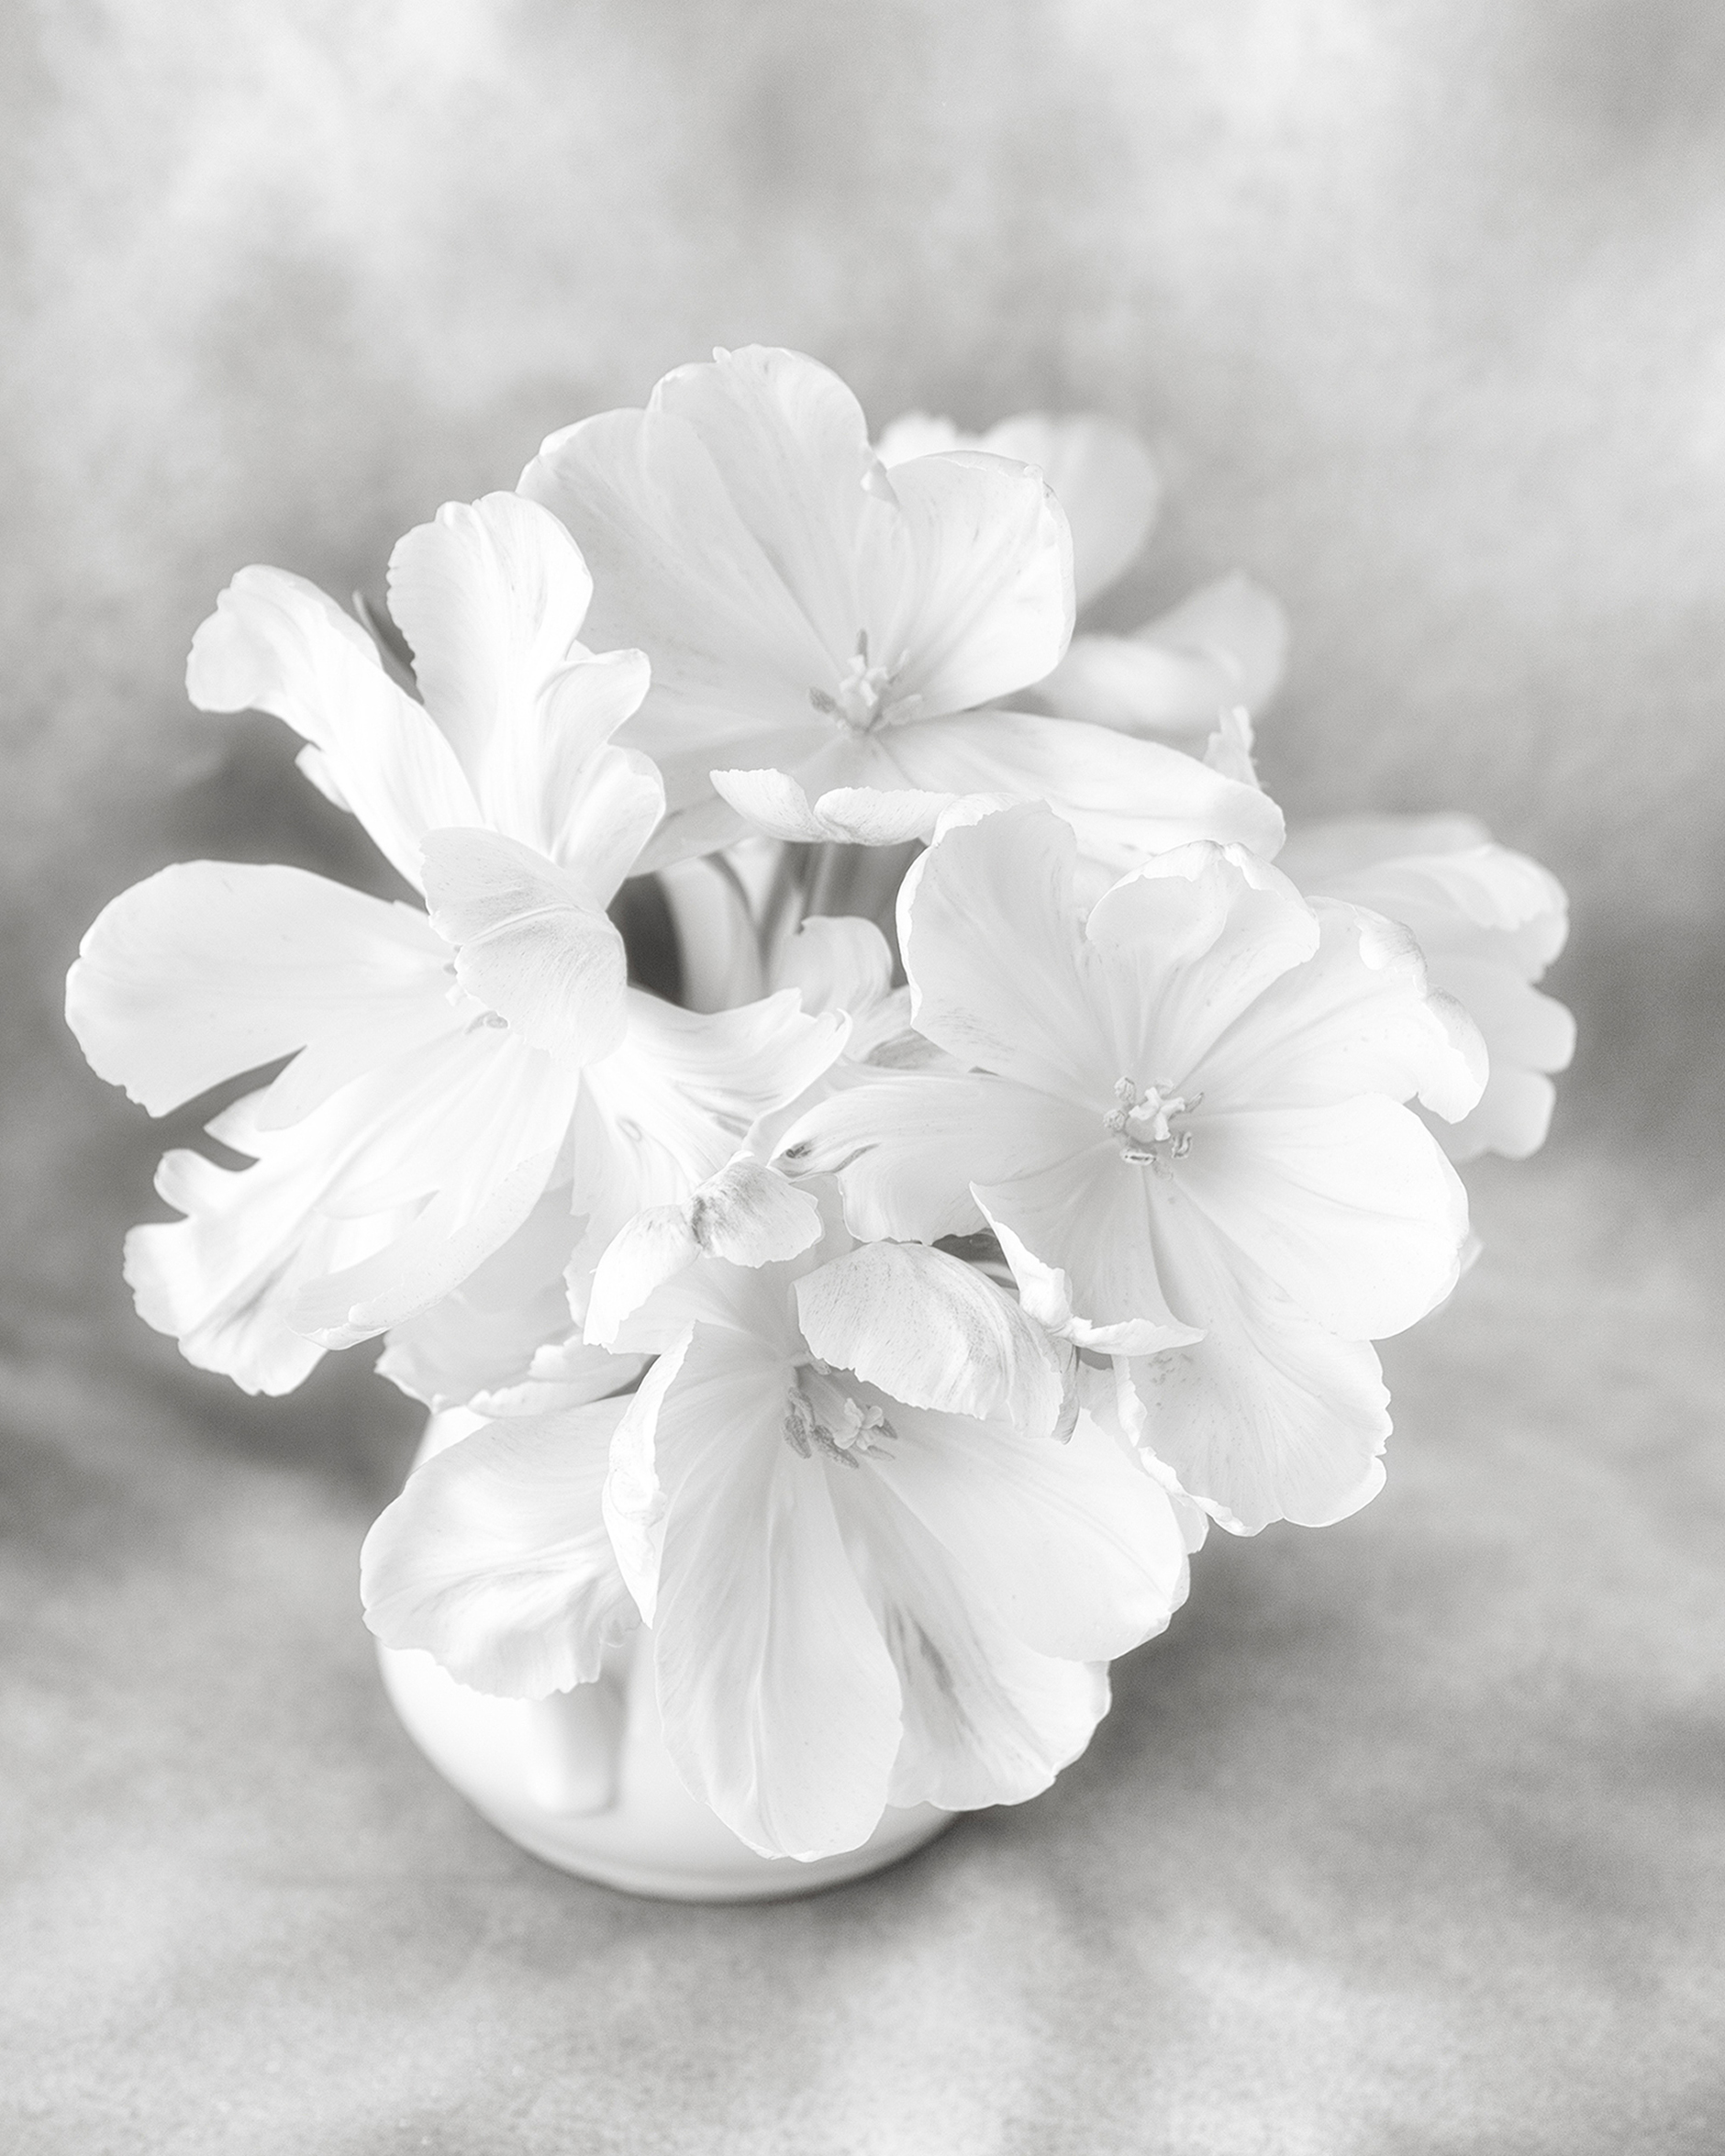 Karen Connell High Key Floral Viewpoint Photographic Art Center